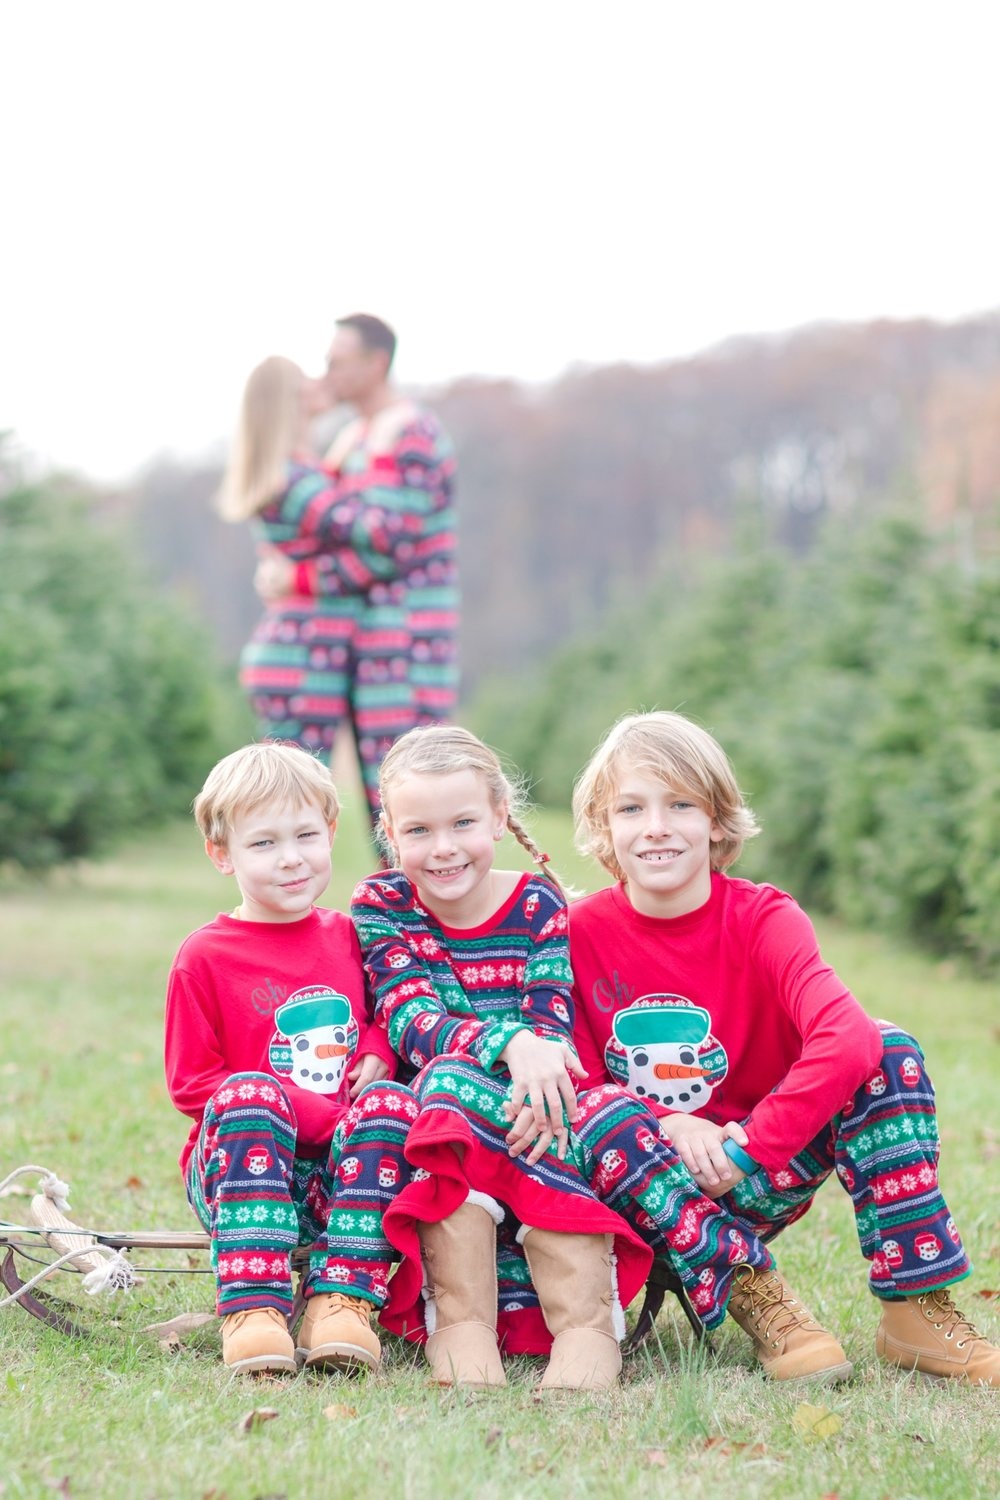 Golembiesky Family 2017-41_ruhl-tree-farm-baltimore-maryland-family-photography-anna-grace-photography-photo.jpg